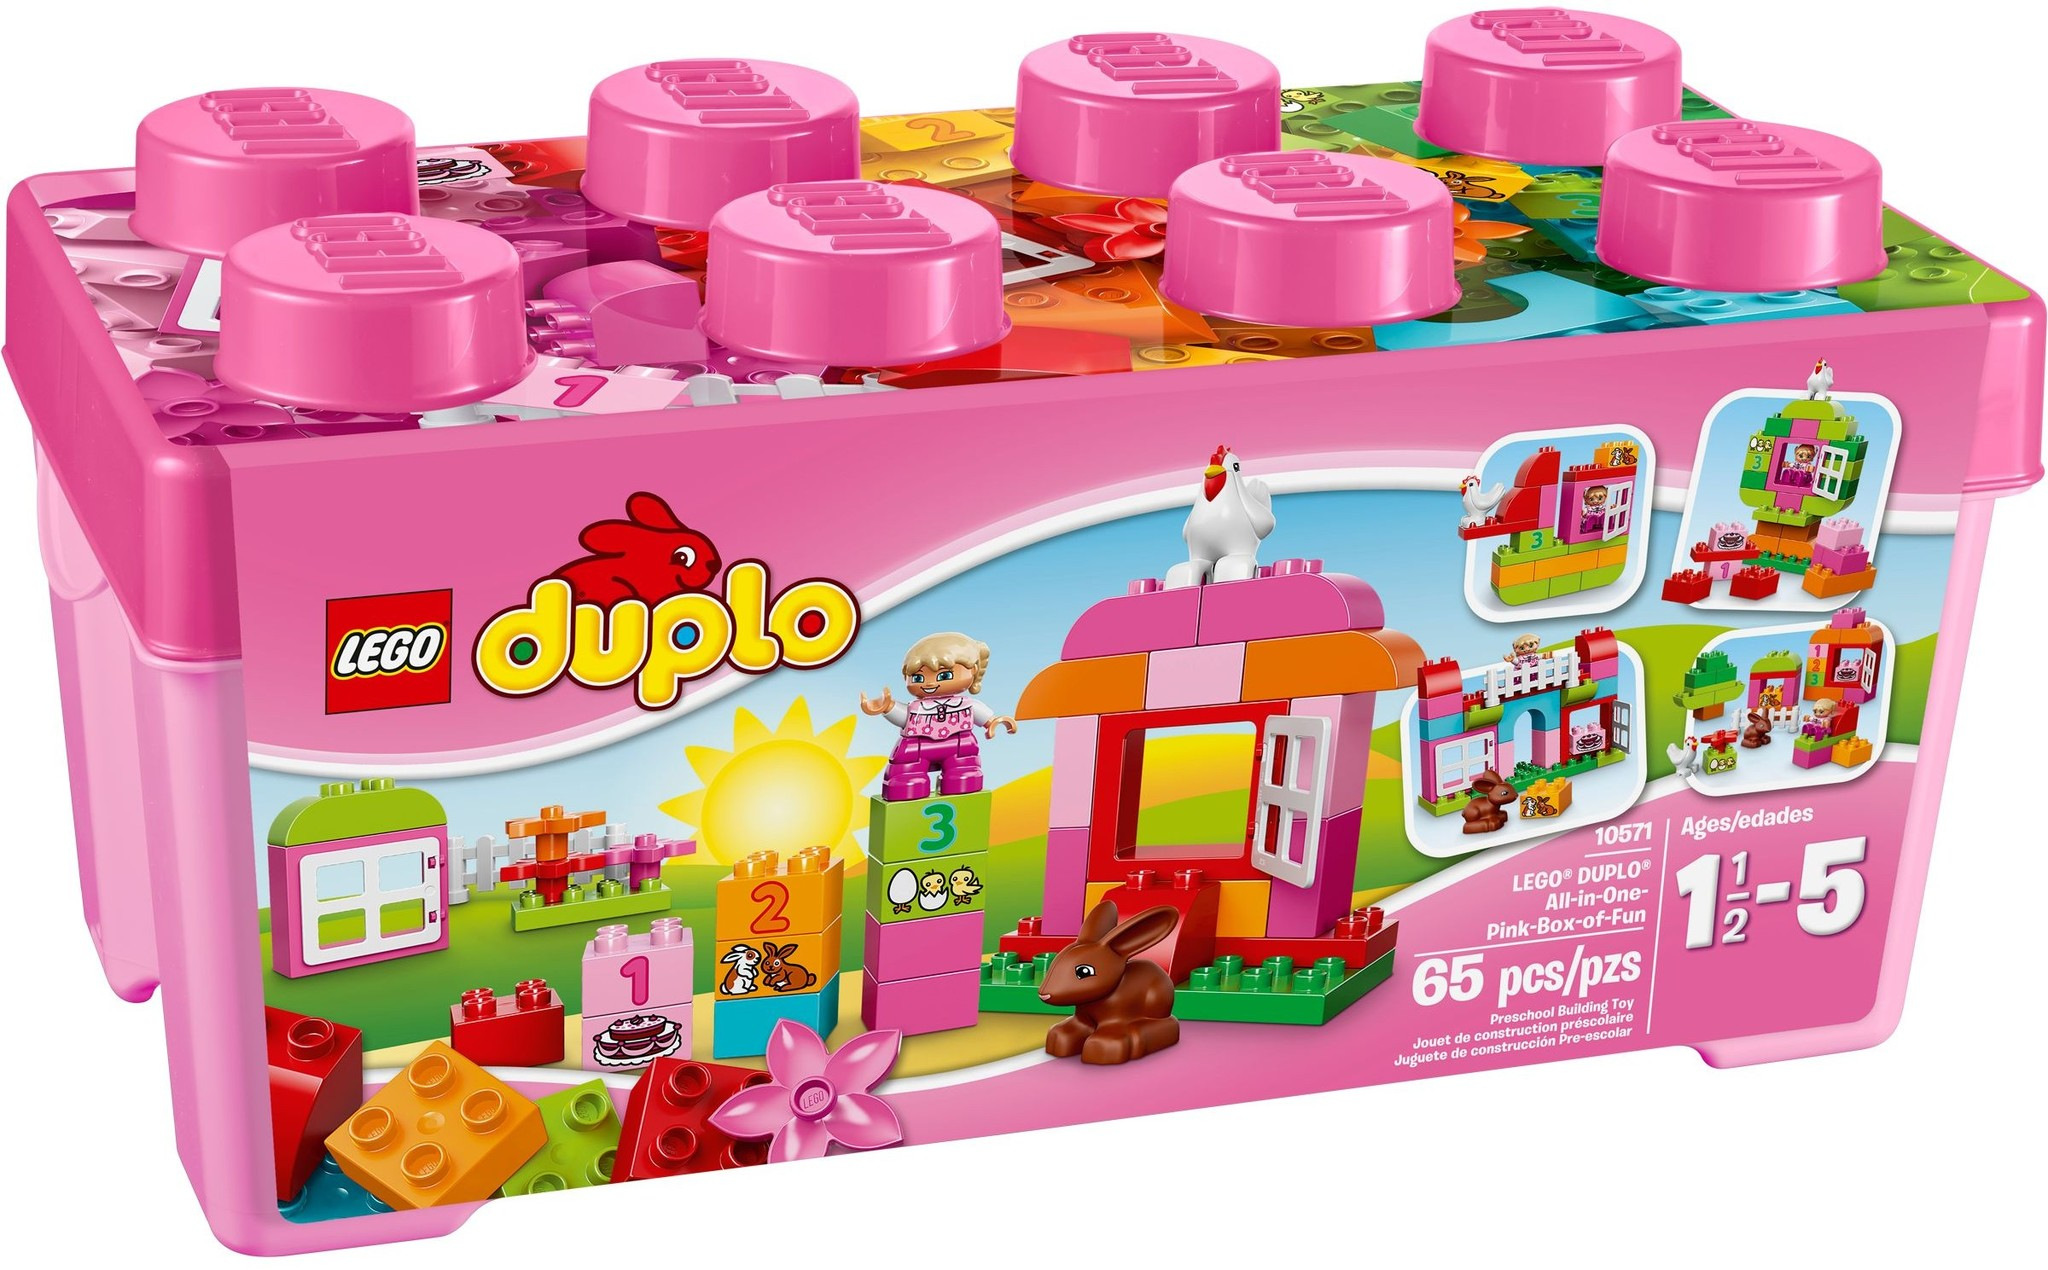 LEGO 10571 - Duplo - All-in-One-Pink-Box-of-Fun